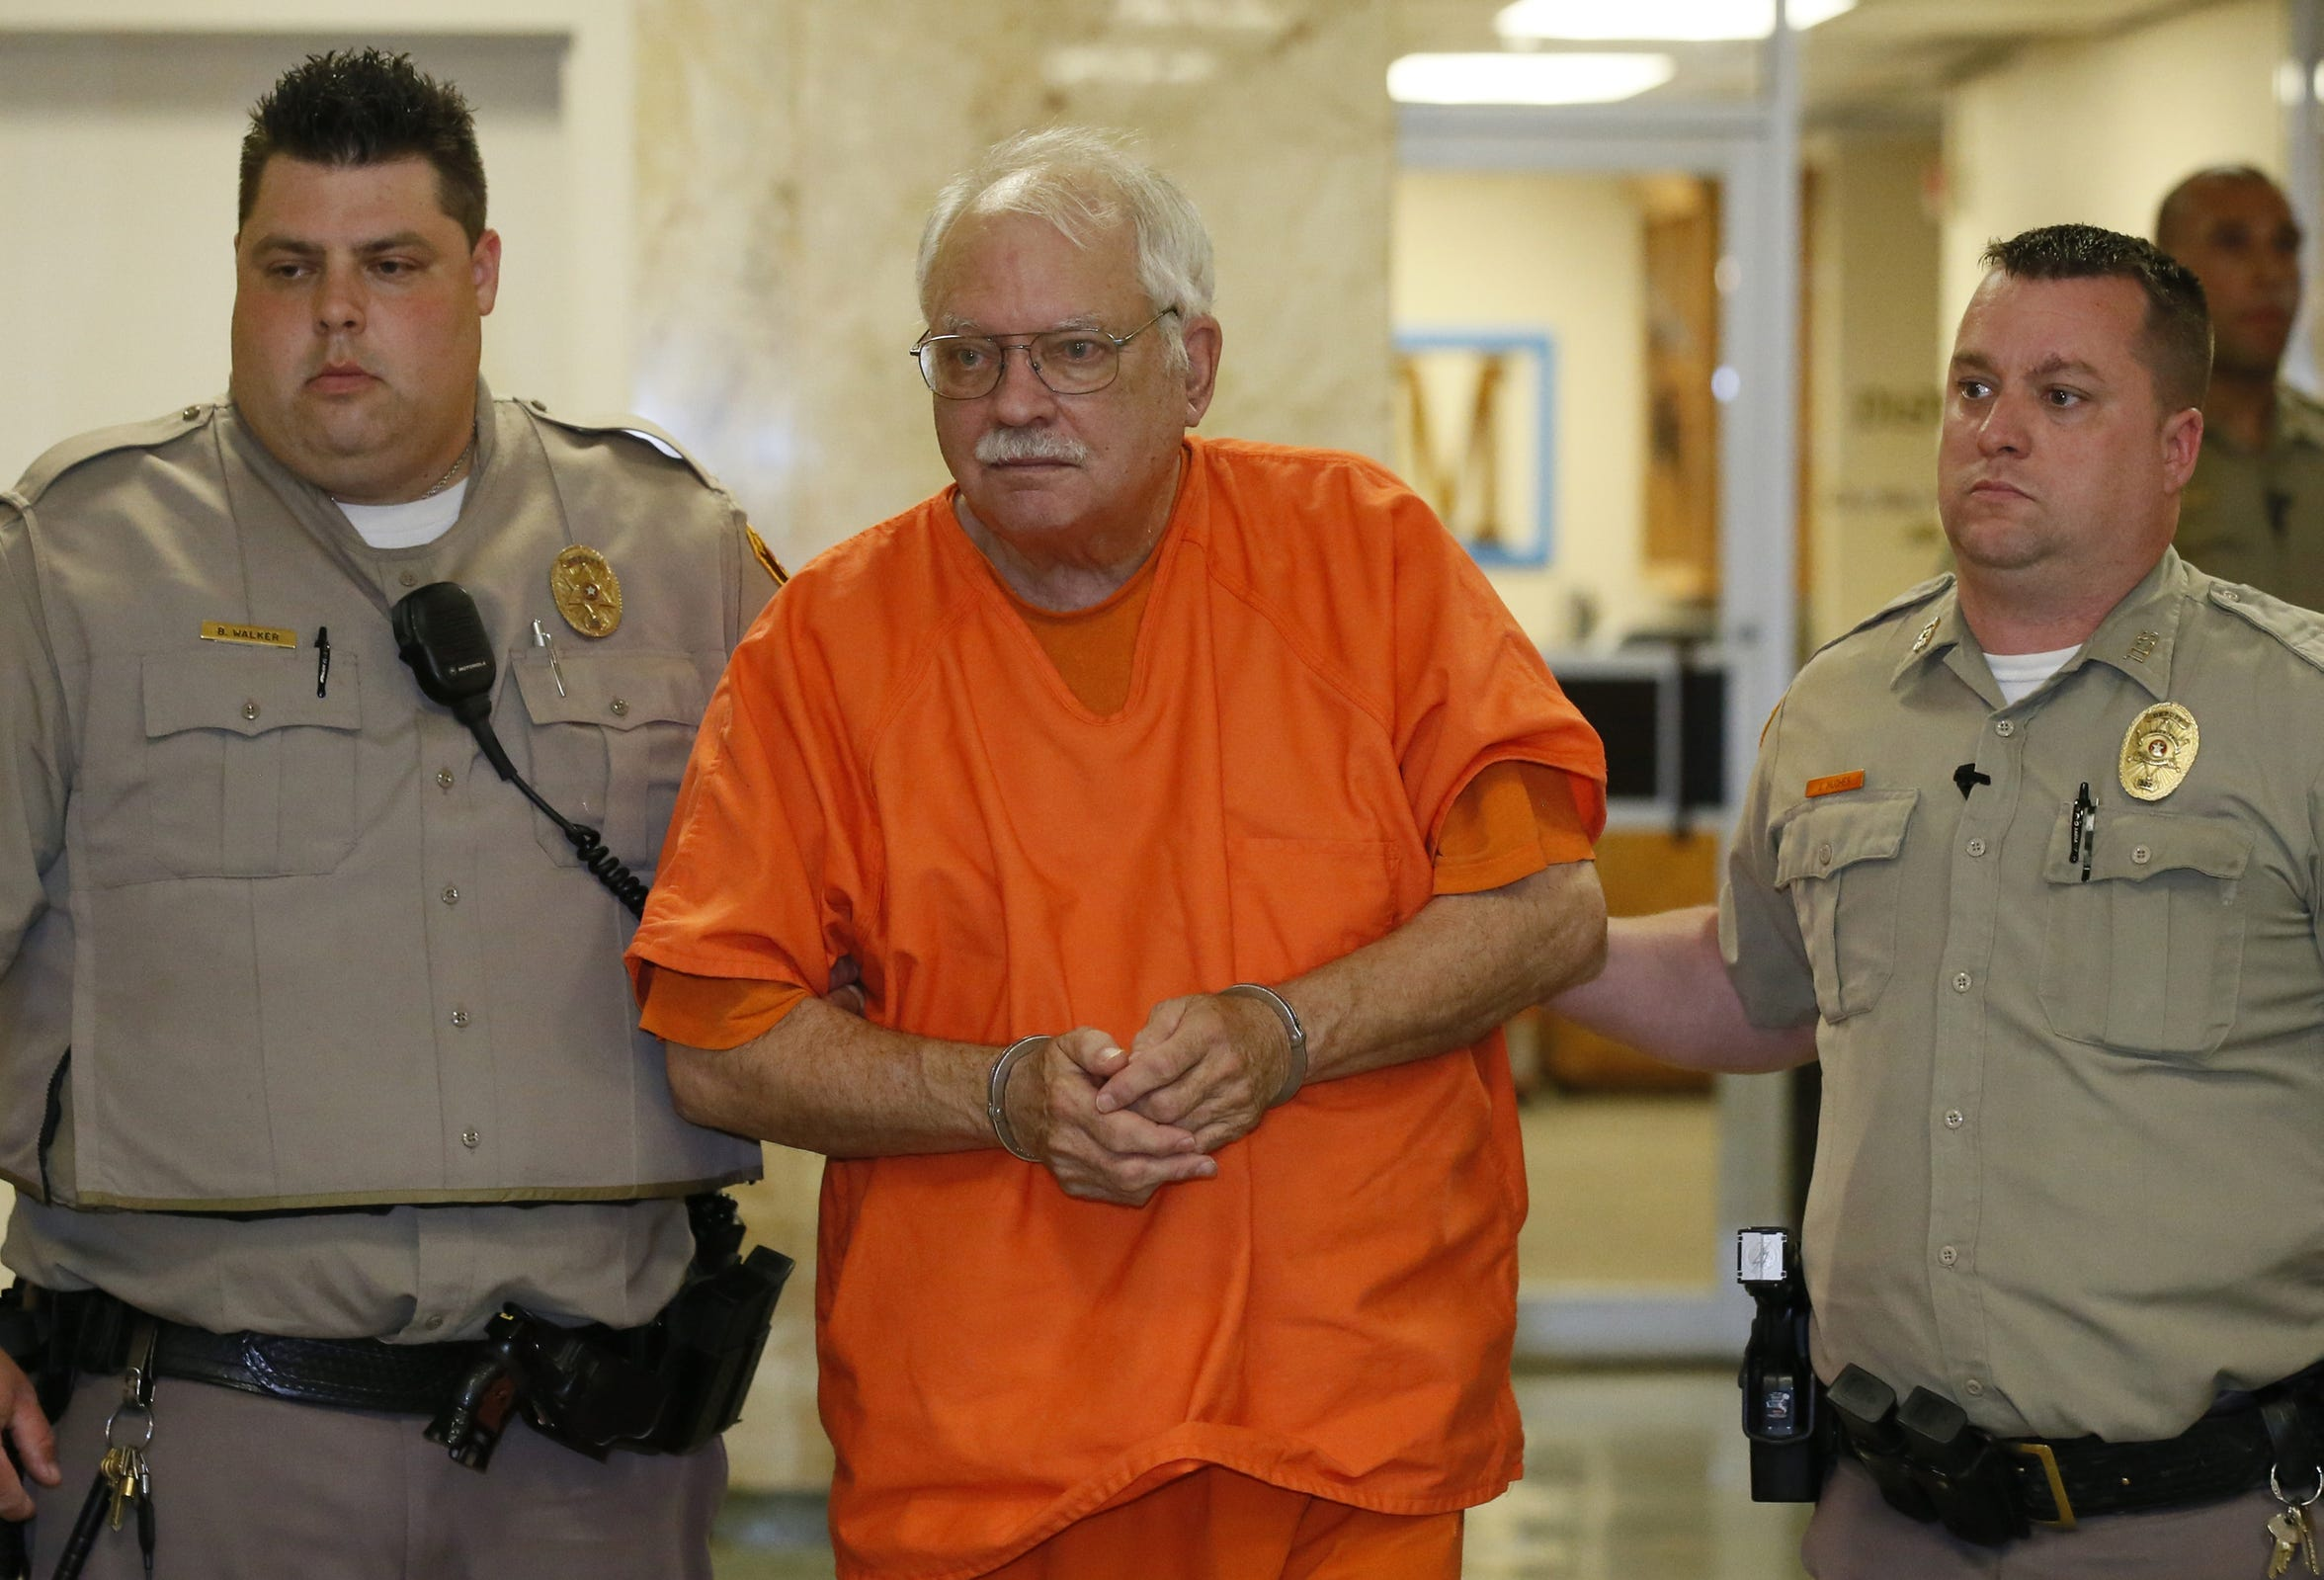 Robert Bates, a former Oklahoma volunteer sheriff's deputy who said he mistook his handgun for his stun gun when he fatally shot an unarmed suspect last year, is escorted from the courtroom following his sentencing at the courthouse in Tulsa, Okla., Tuesday, May 31, 2016. Bates, who was convicted of second-degree manslaughter, was sentenced to four years. (AP Photo/Sue Ogrocki)